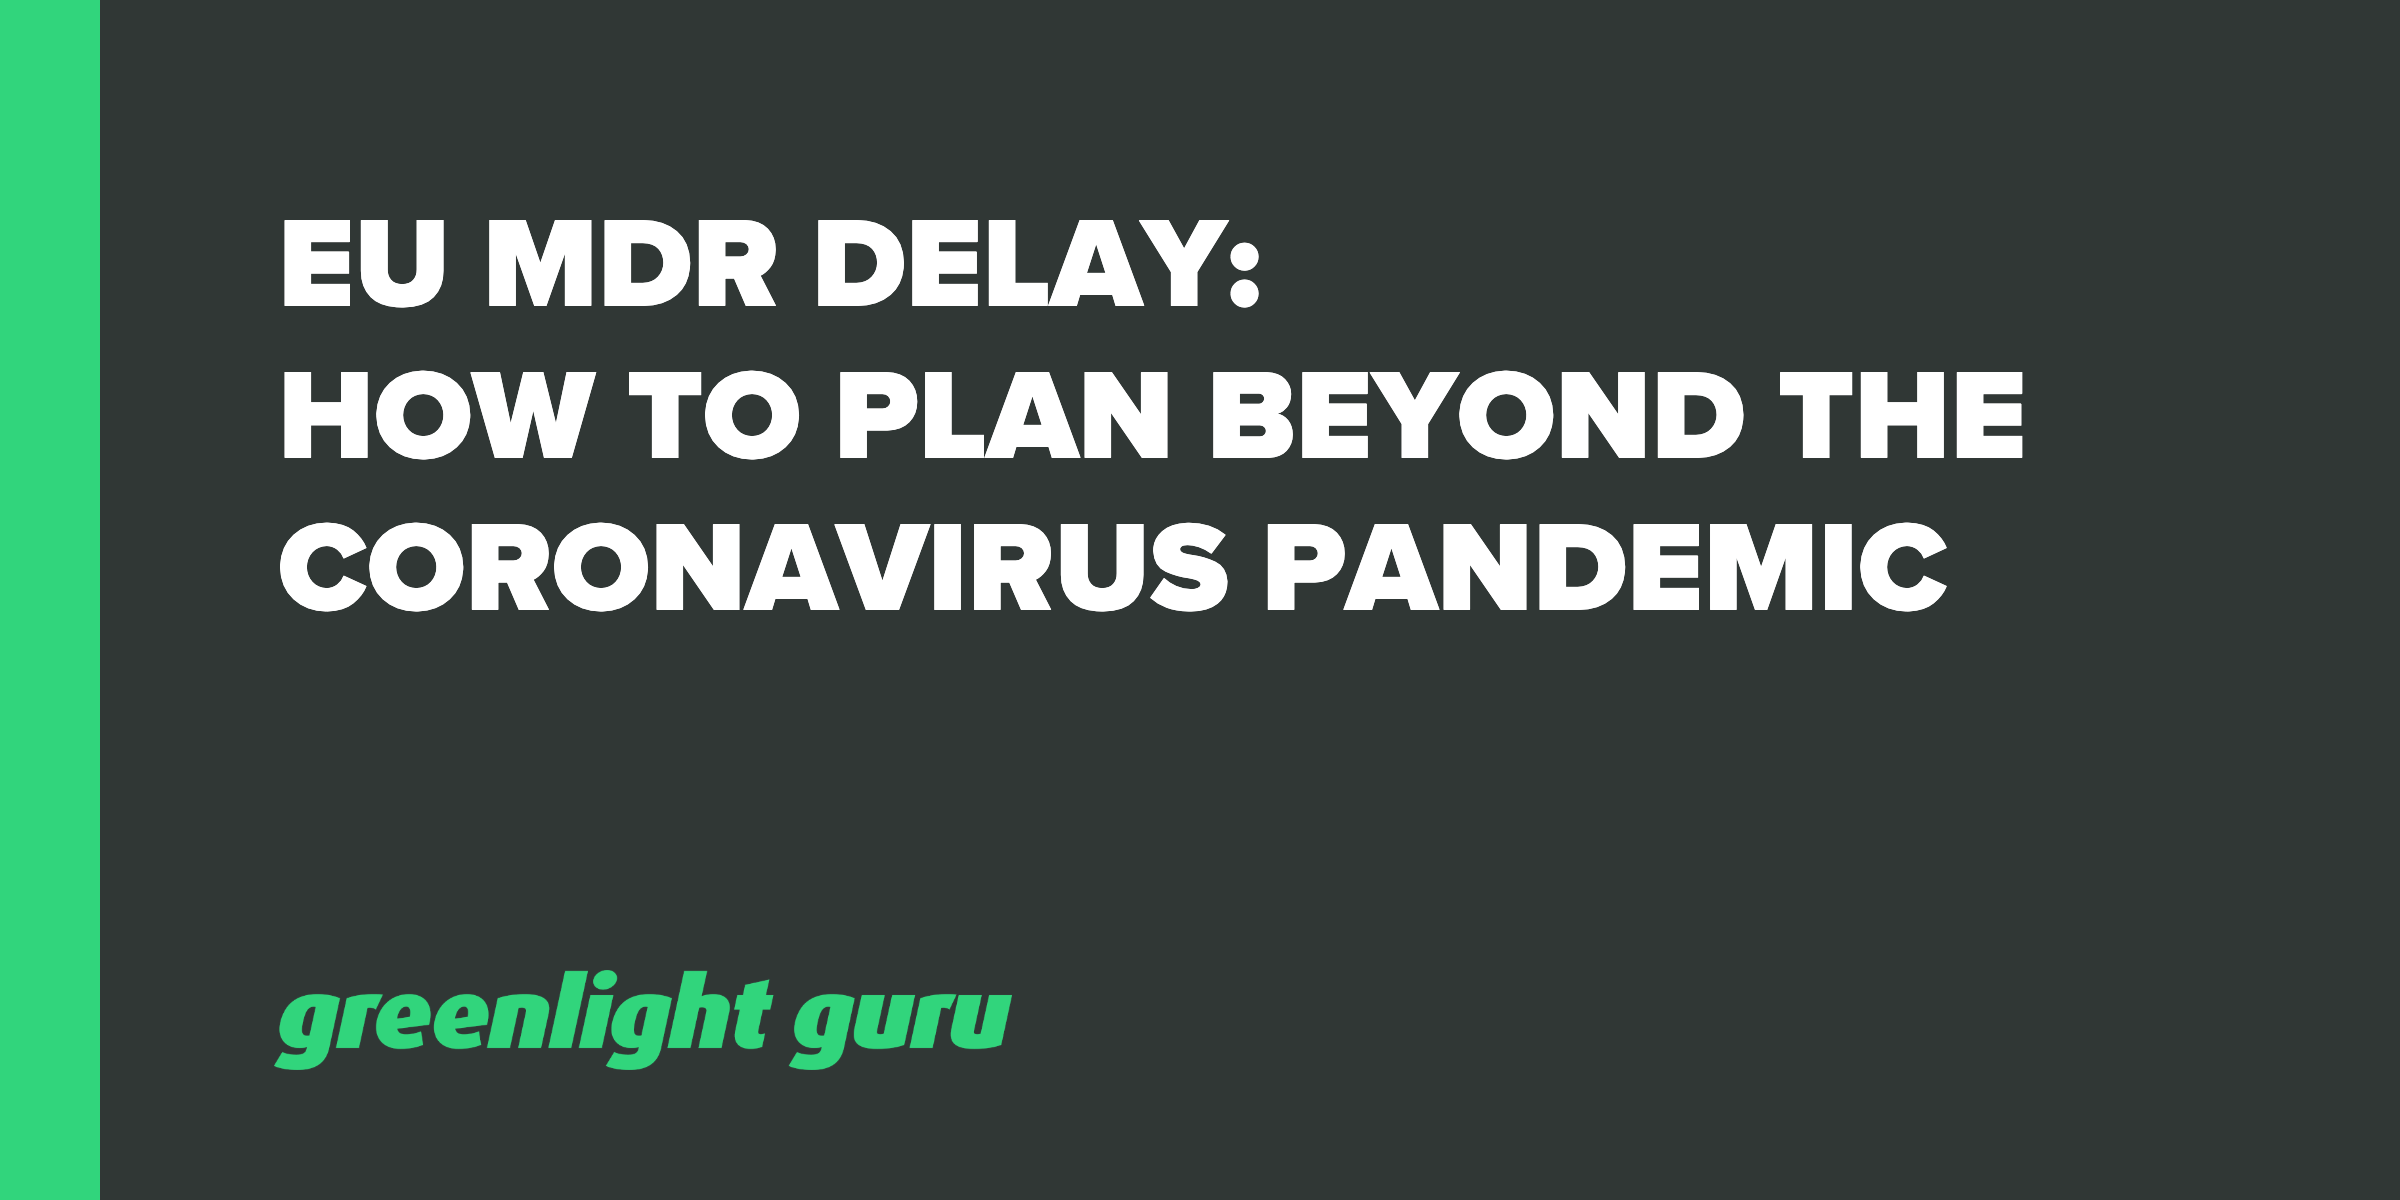 EU MDR delay - how to plan beyond coronavirus pandemic